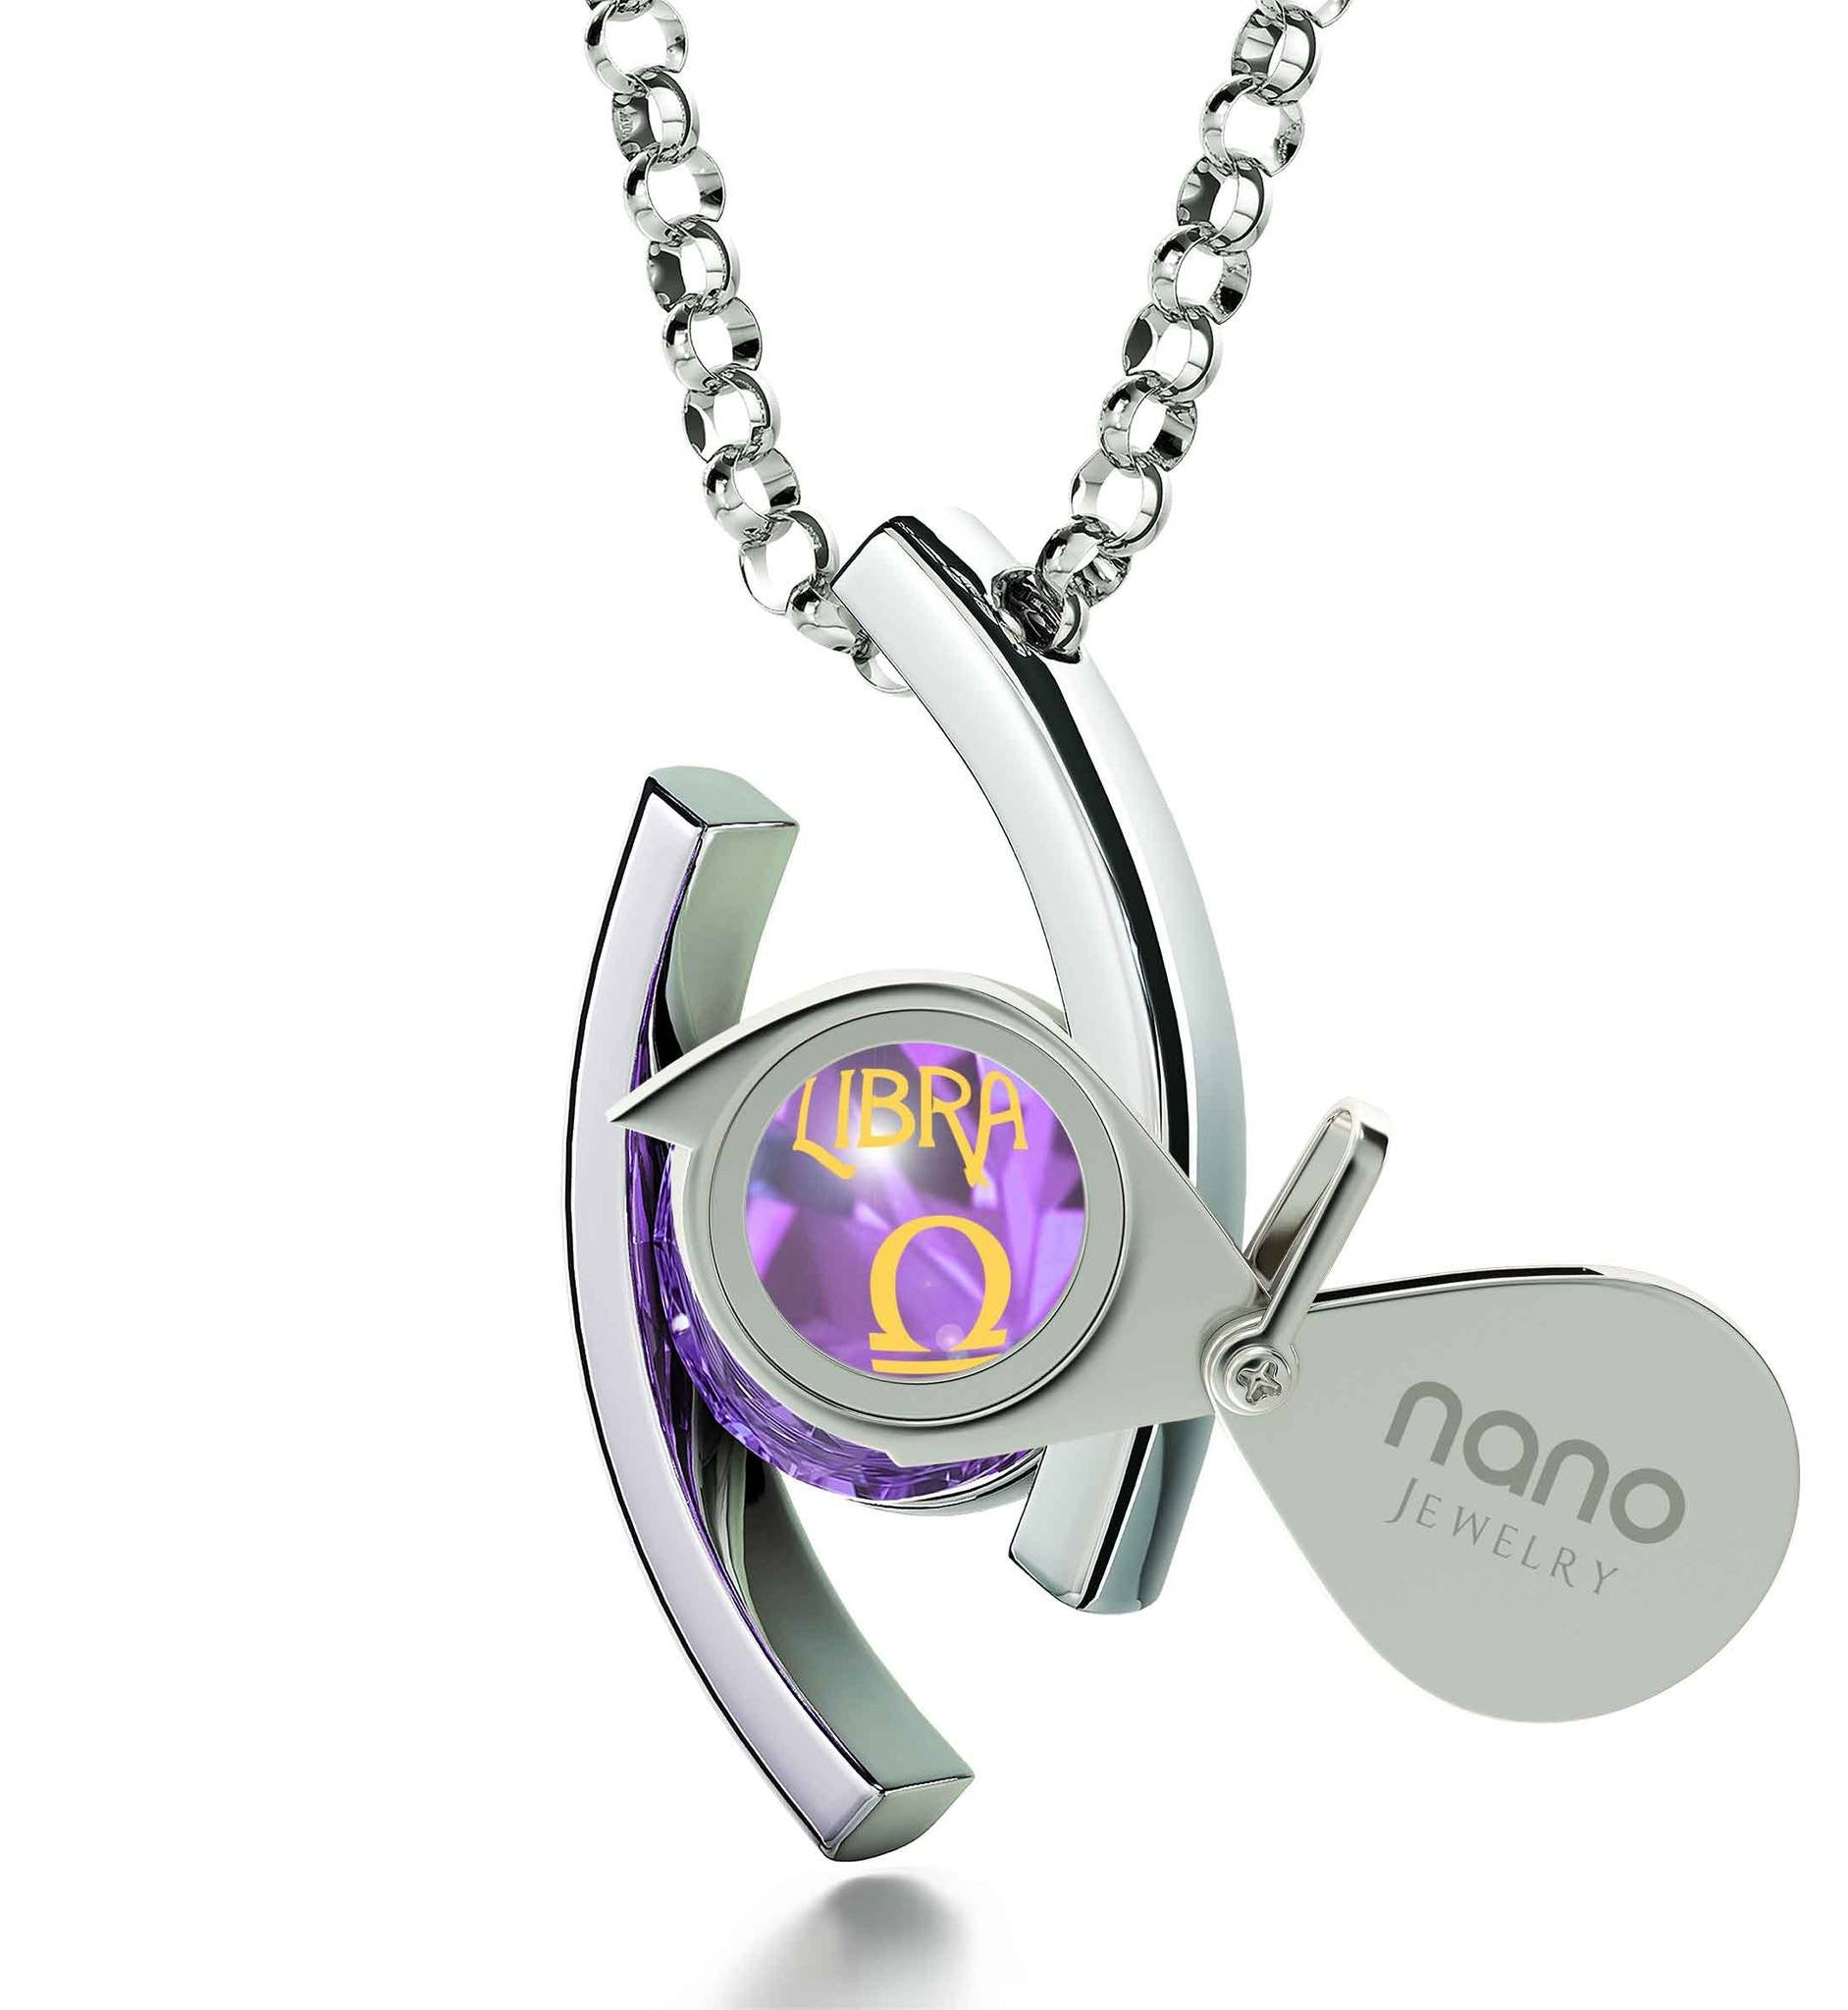 """Libra Jewelry With 24k Zodiac Imprint, Womens Christmas Ideas, Best Gift for Wife, October Birthstone Necklace"""